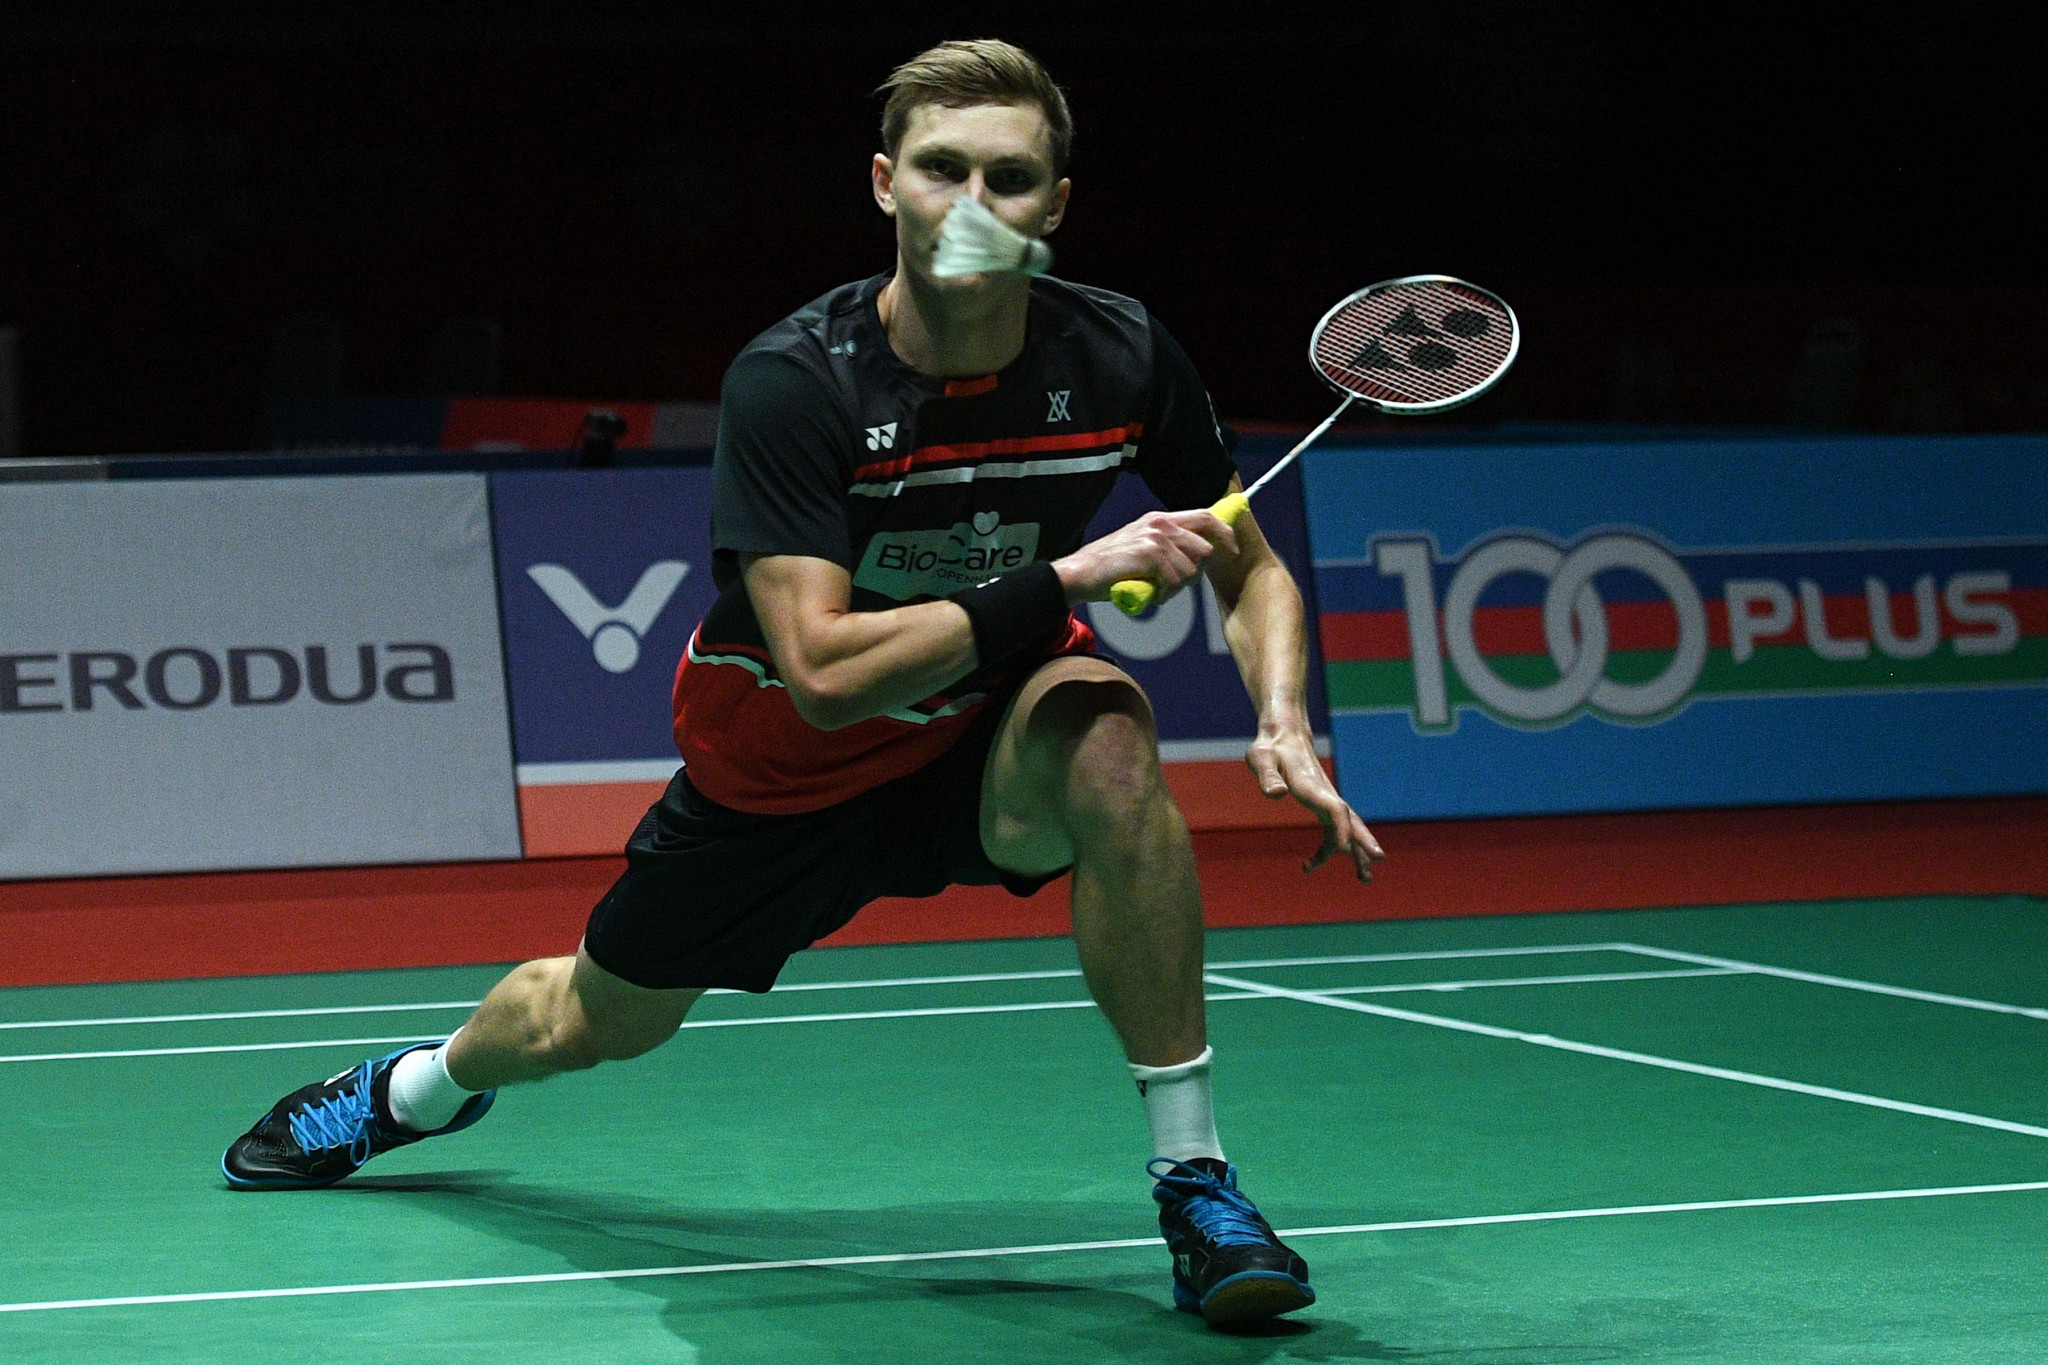 Defending champion Axelsen through to last eight at BWF Barcelona Spain Masters